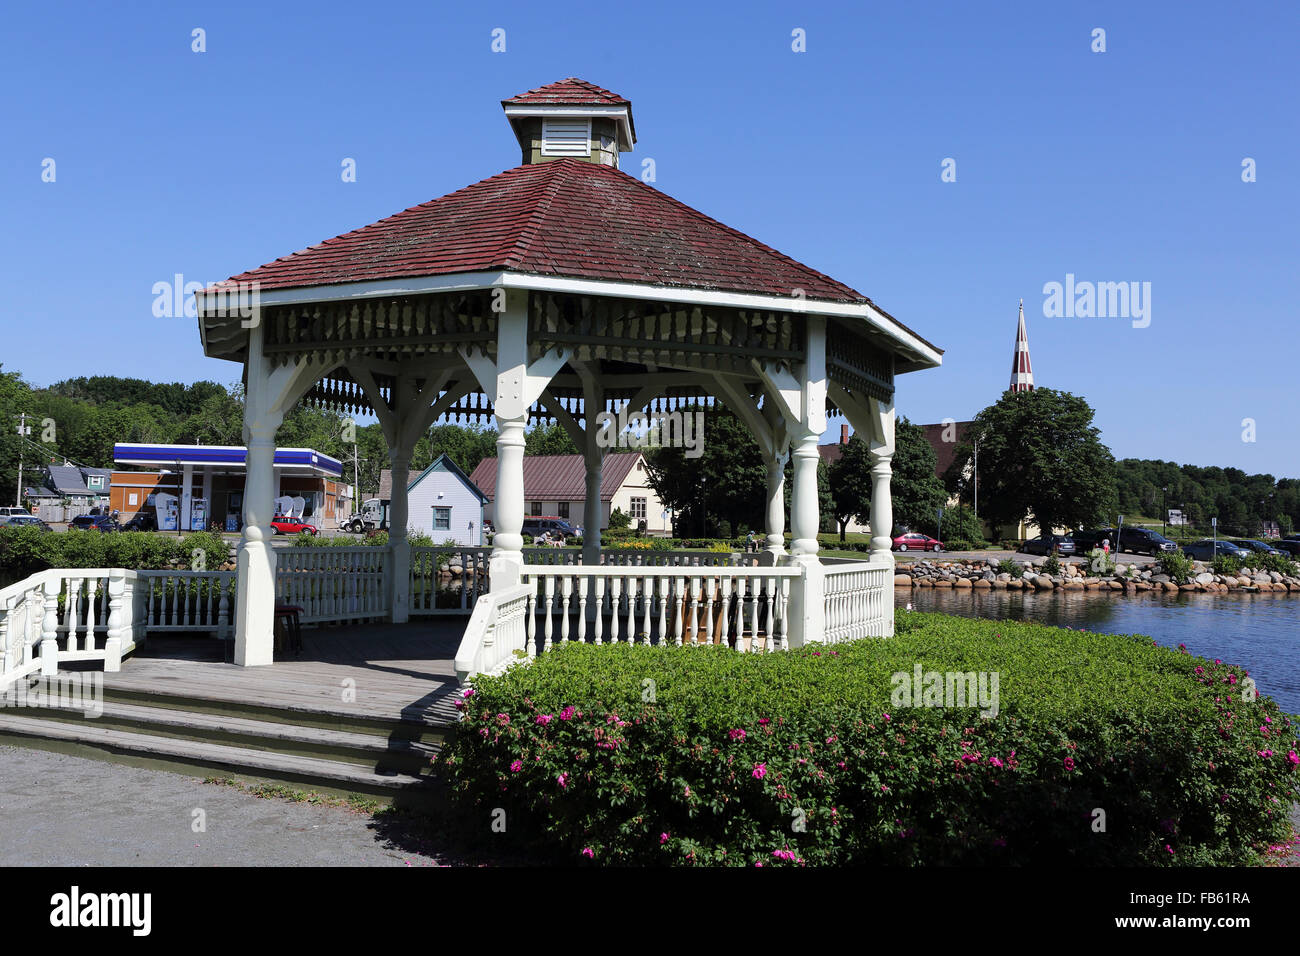 Thw waterfront bandstand in Mahone Bay in Nova Scotia, Canada. The bandstand is used for musical recitals. - Stock Image